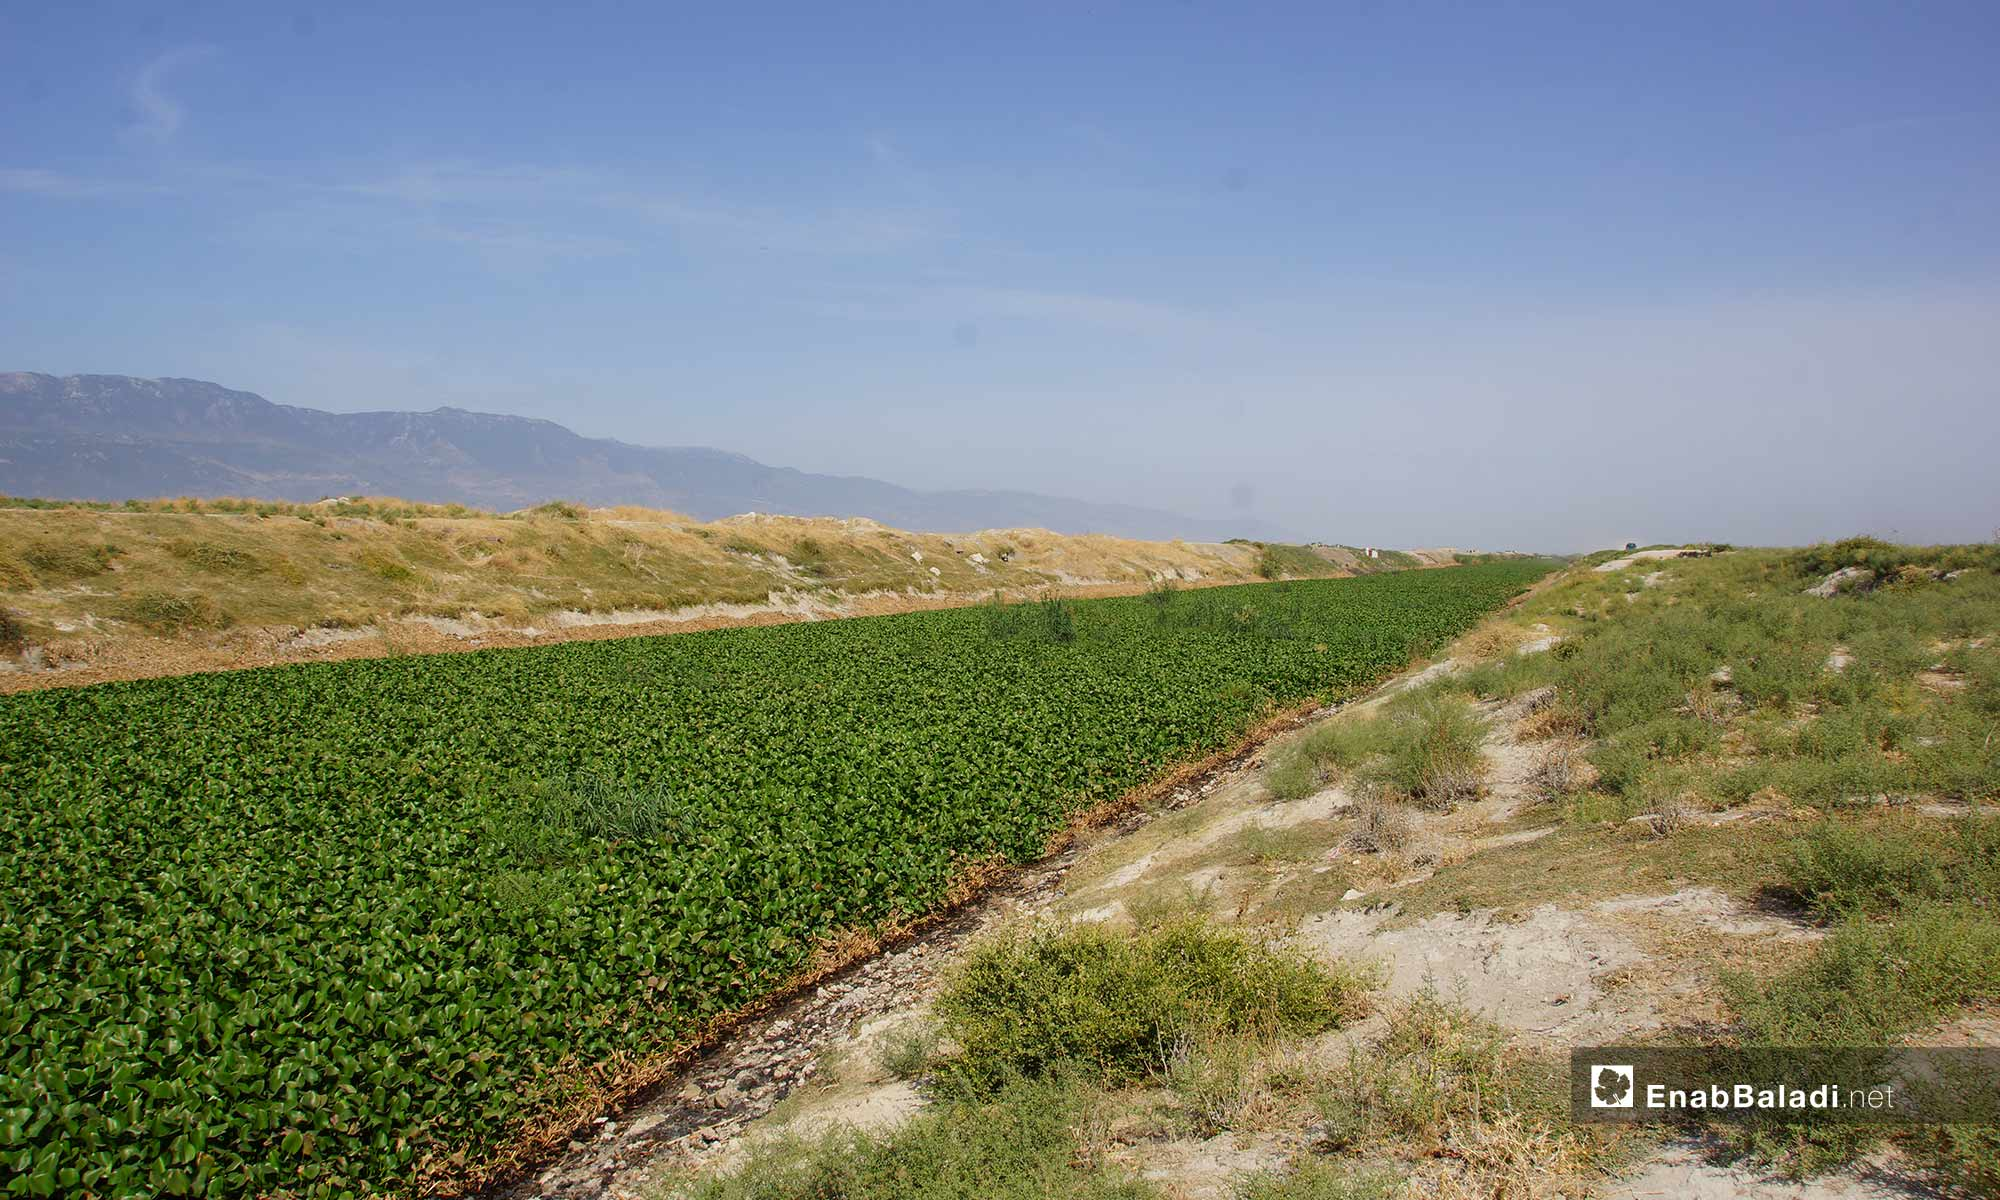 The residents of al-Ghab Plain suffer from the spread of the Nile flower in the farmlands on the Orontes River in Hama countryside - 30 September 2018 (Enab Baladi)